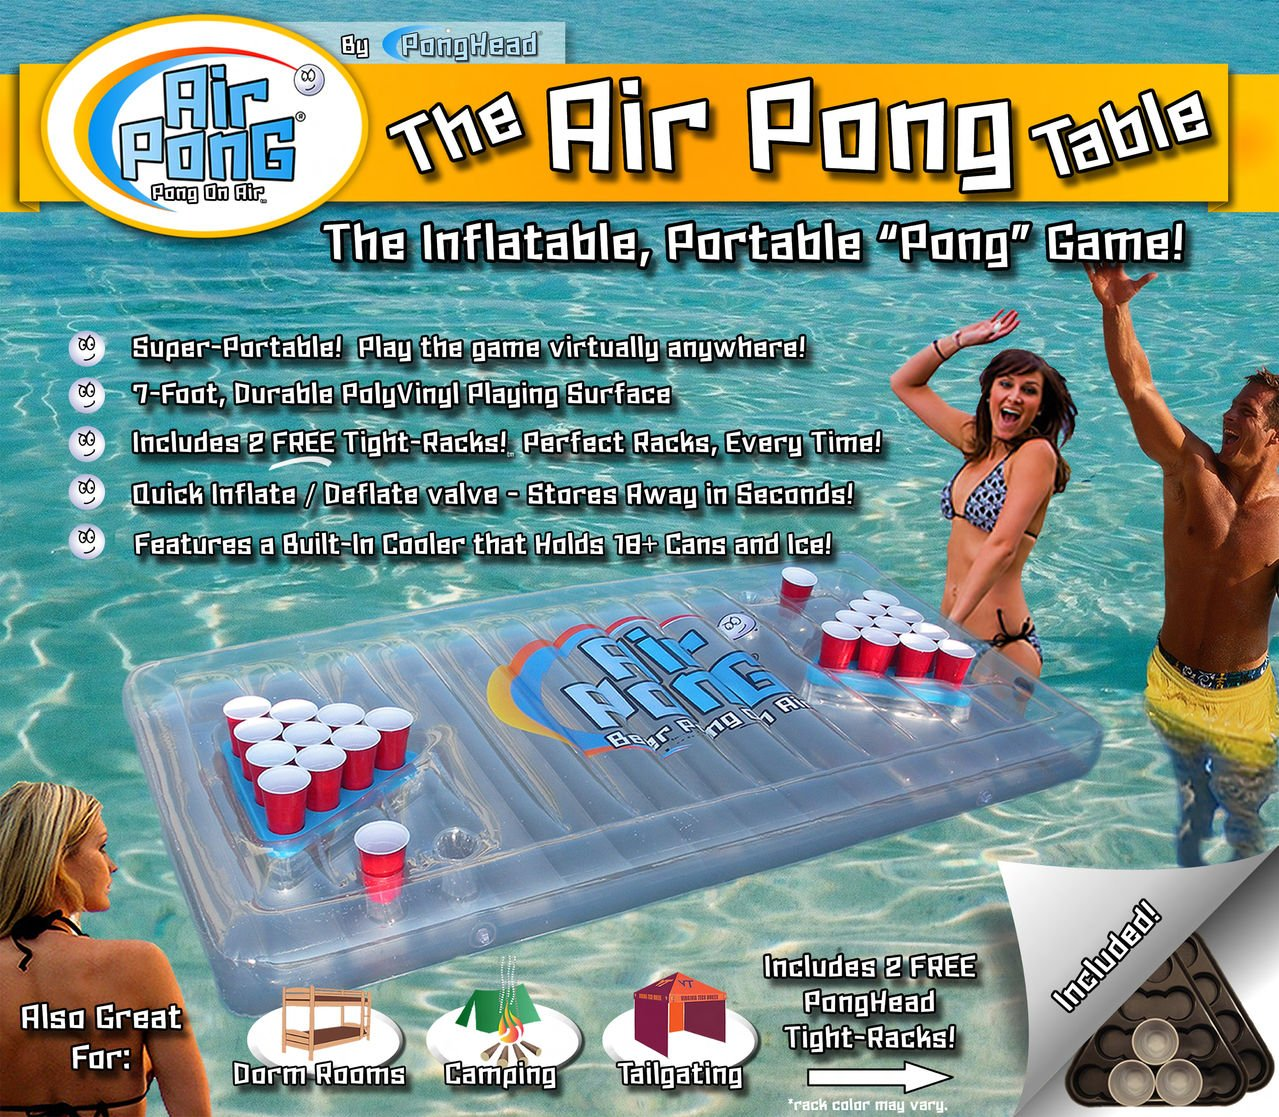 Air Pong The Table, Inflatable Beer Pong Cooler, Floating Beer Pong Table, 7ft, Vinyl, Lightweight, Portable, Comes with a Built-in Cooler and Free Plastic Racks, by PongHead by Air Pong